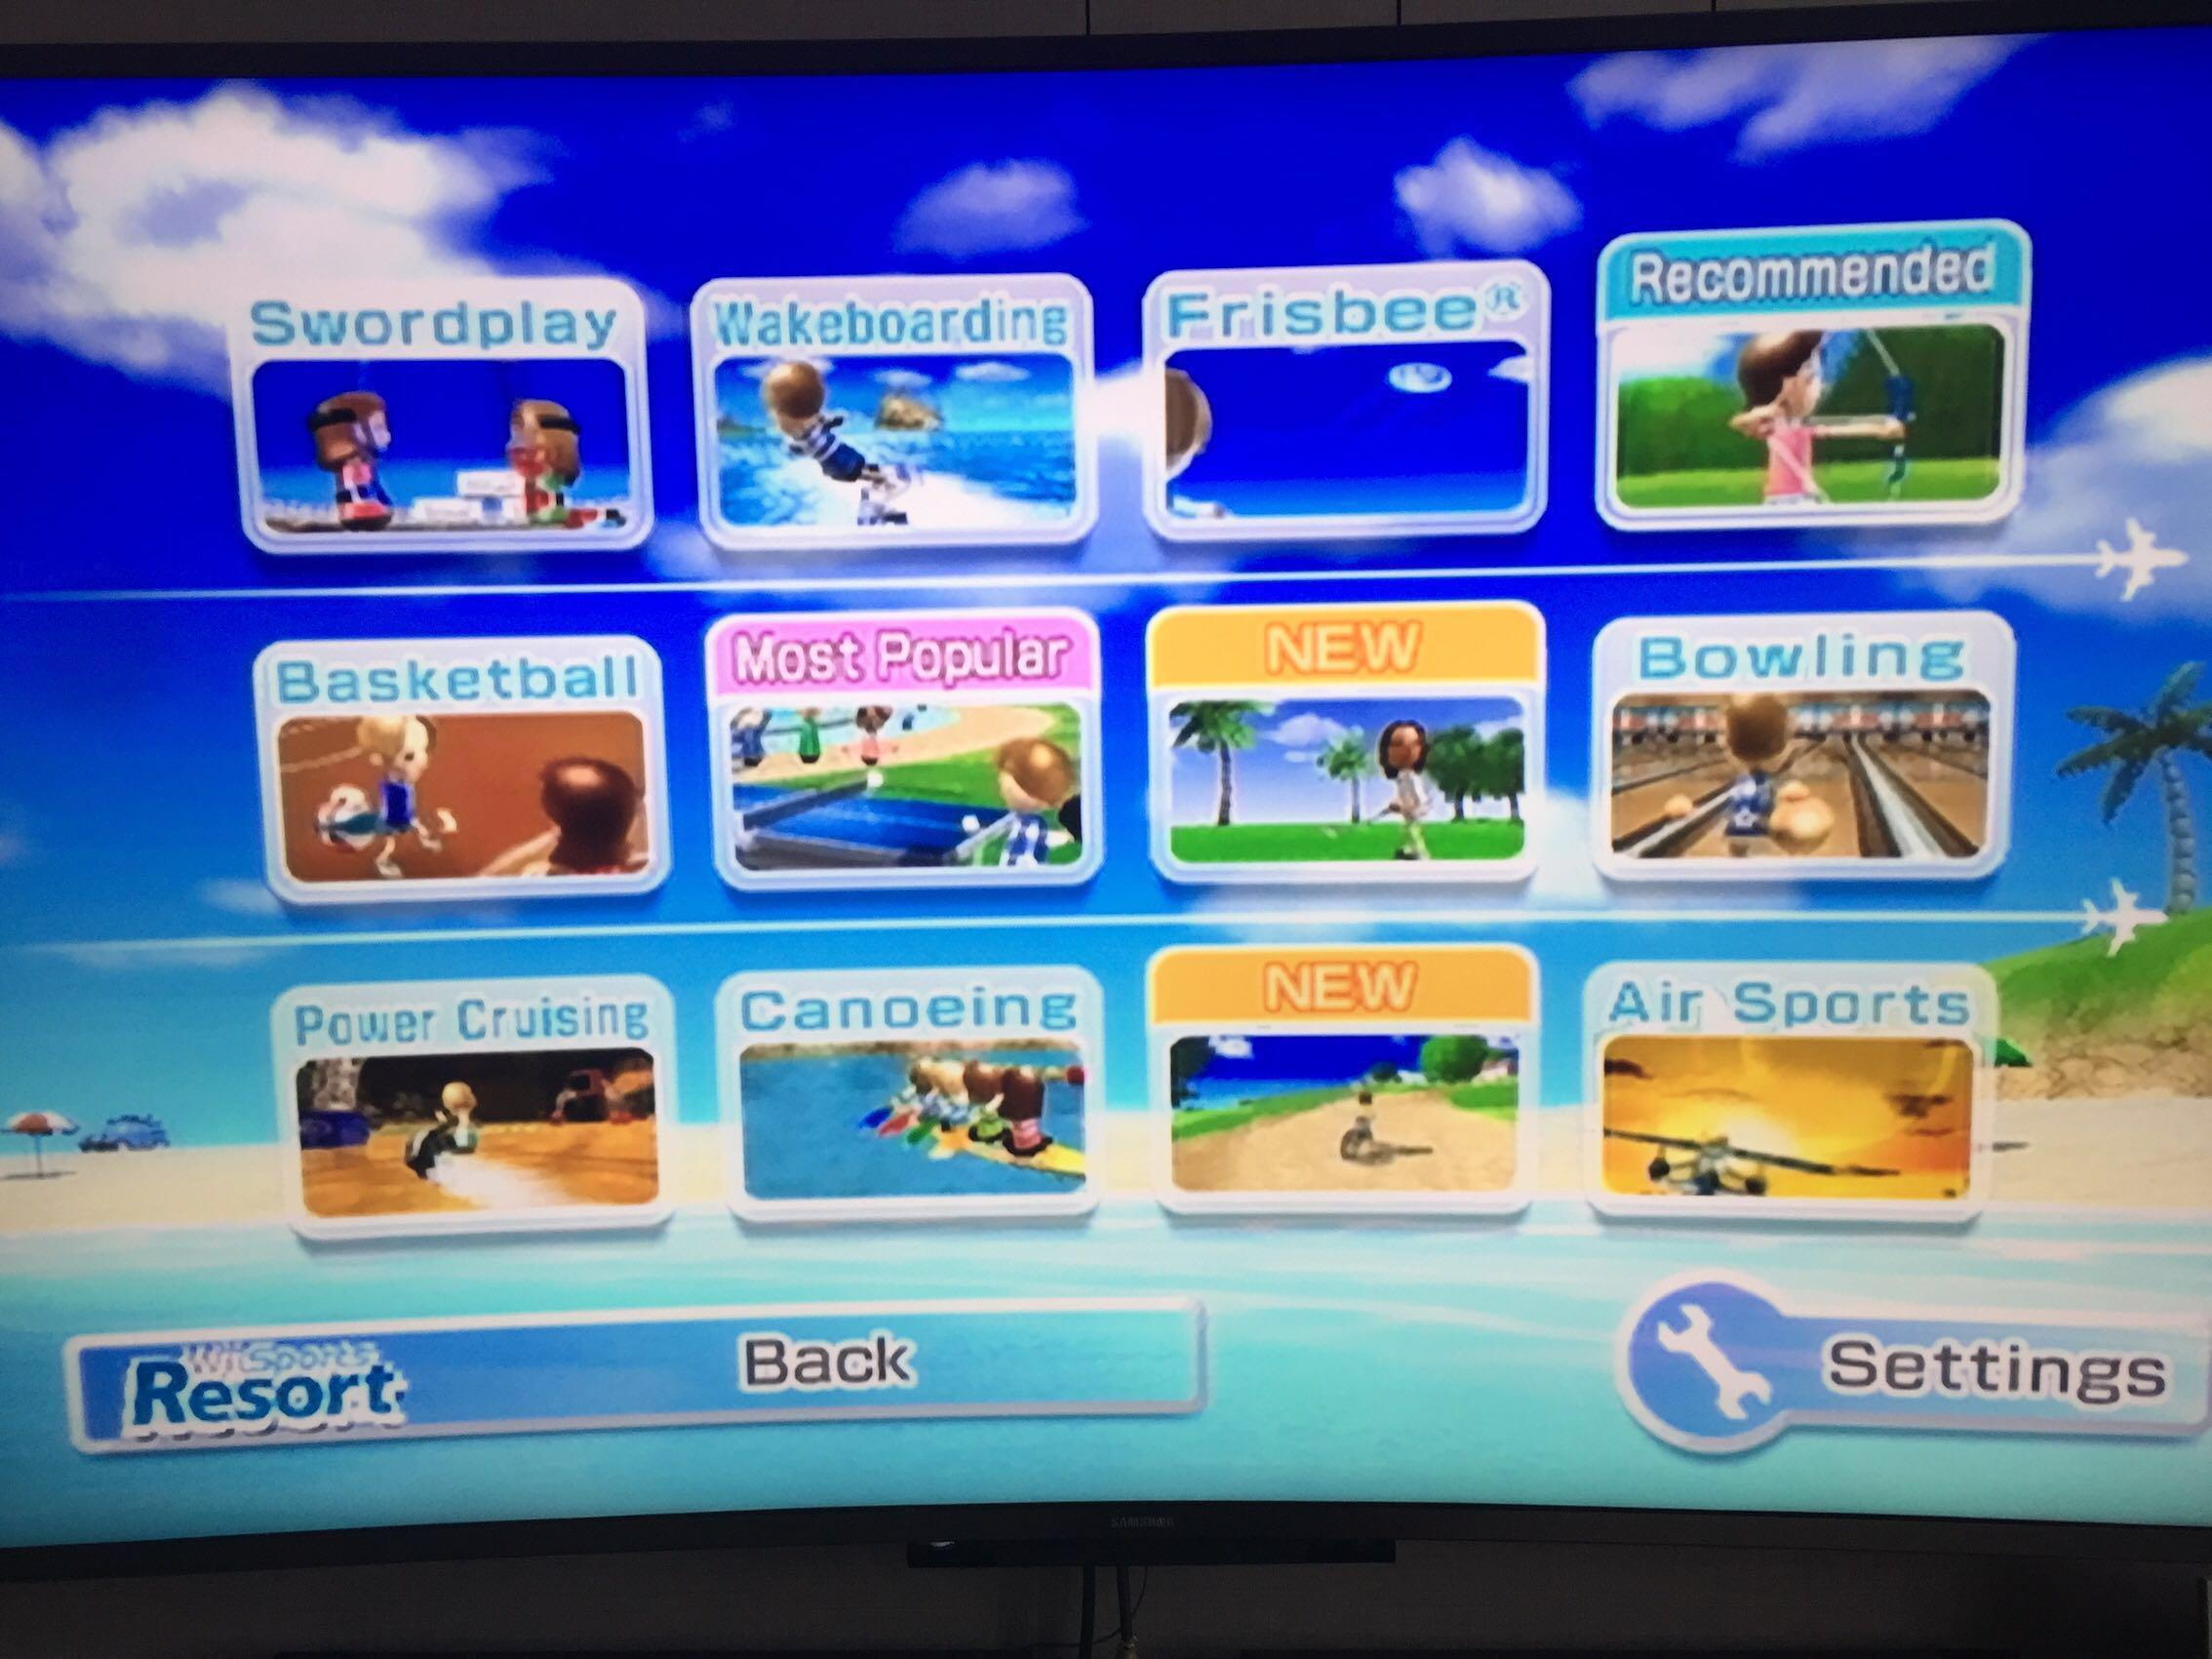 RENTAL] Nintendo Wii Console + 4 Wii Controllers + 4